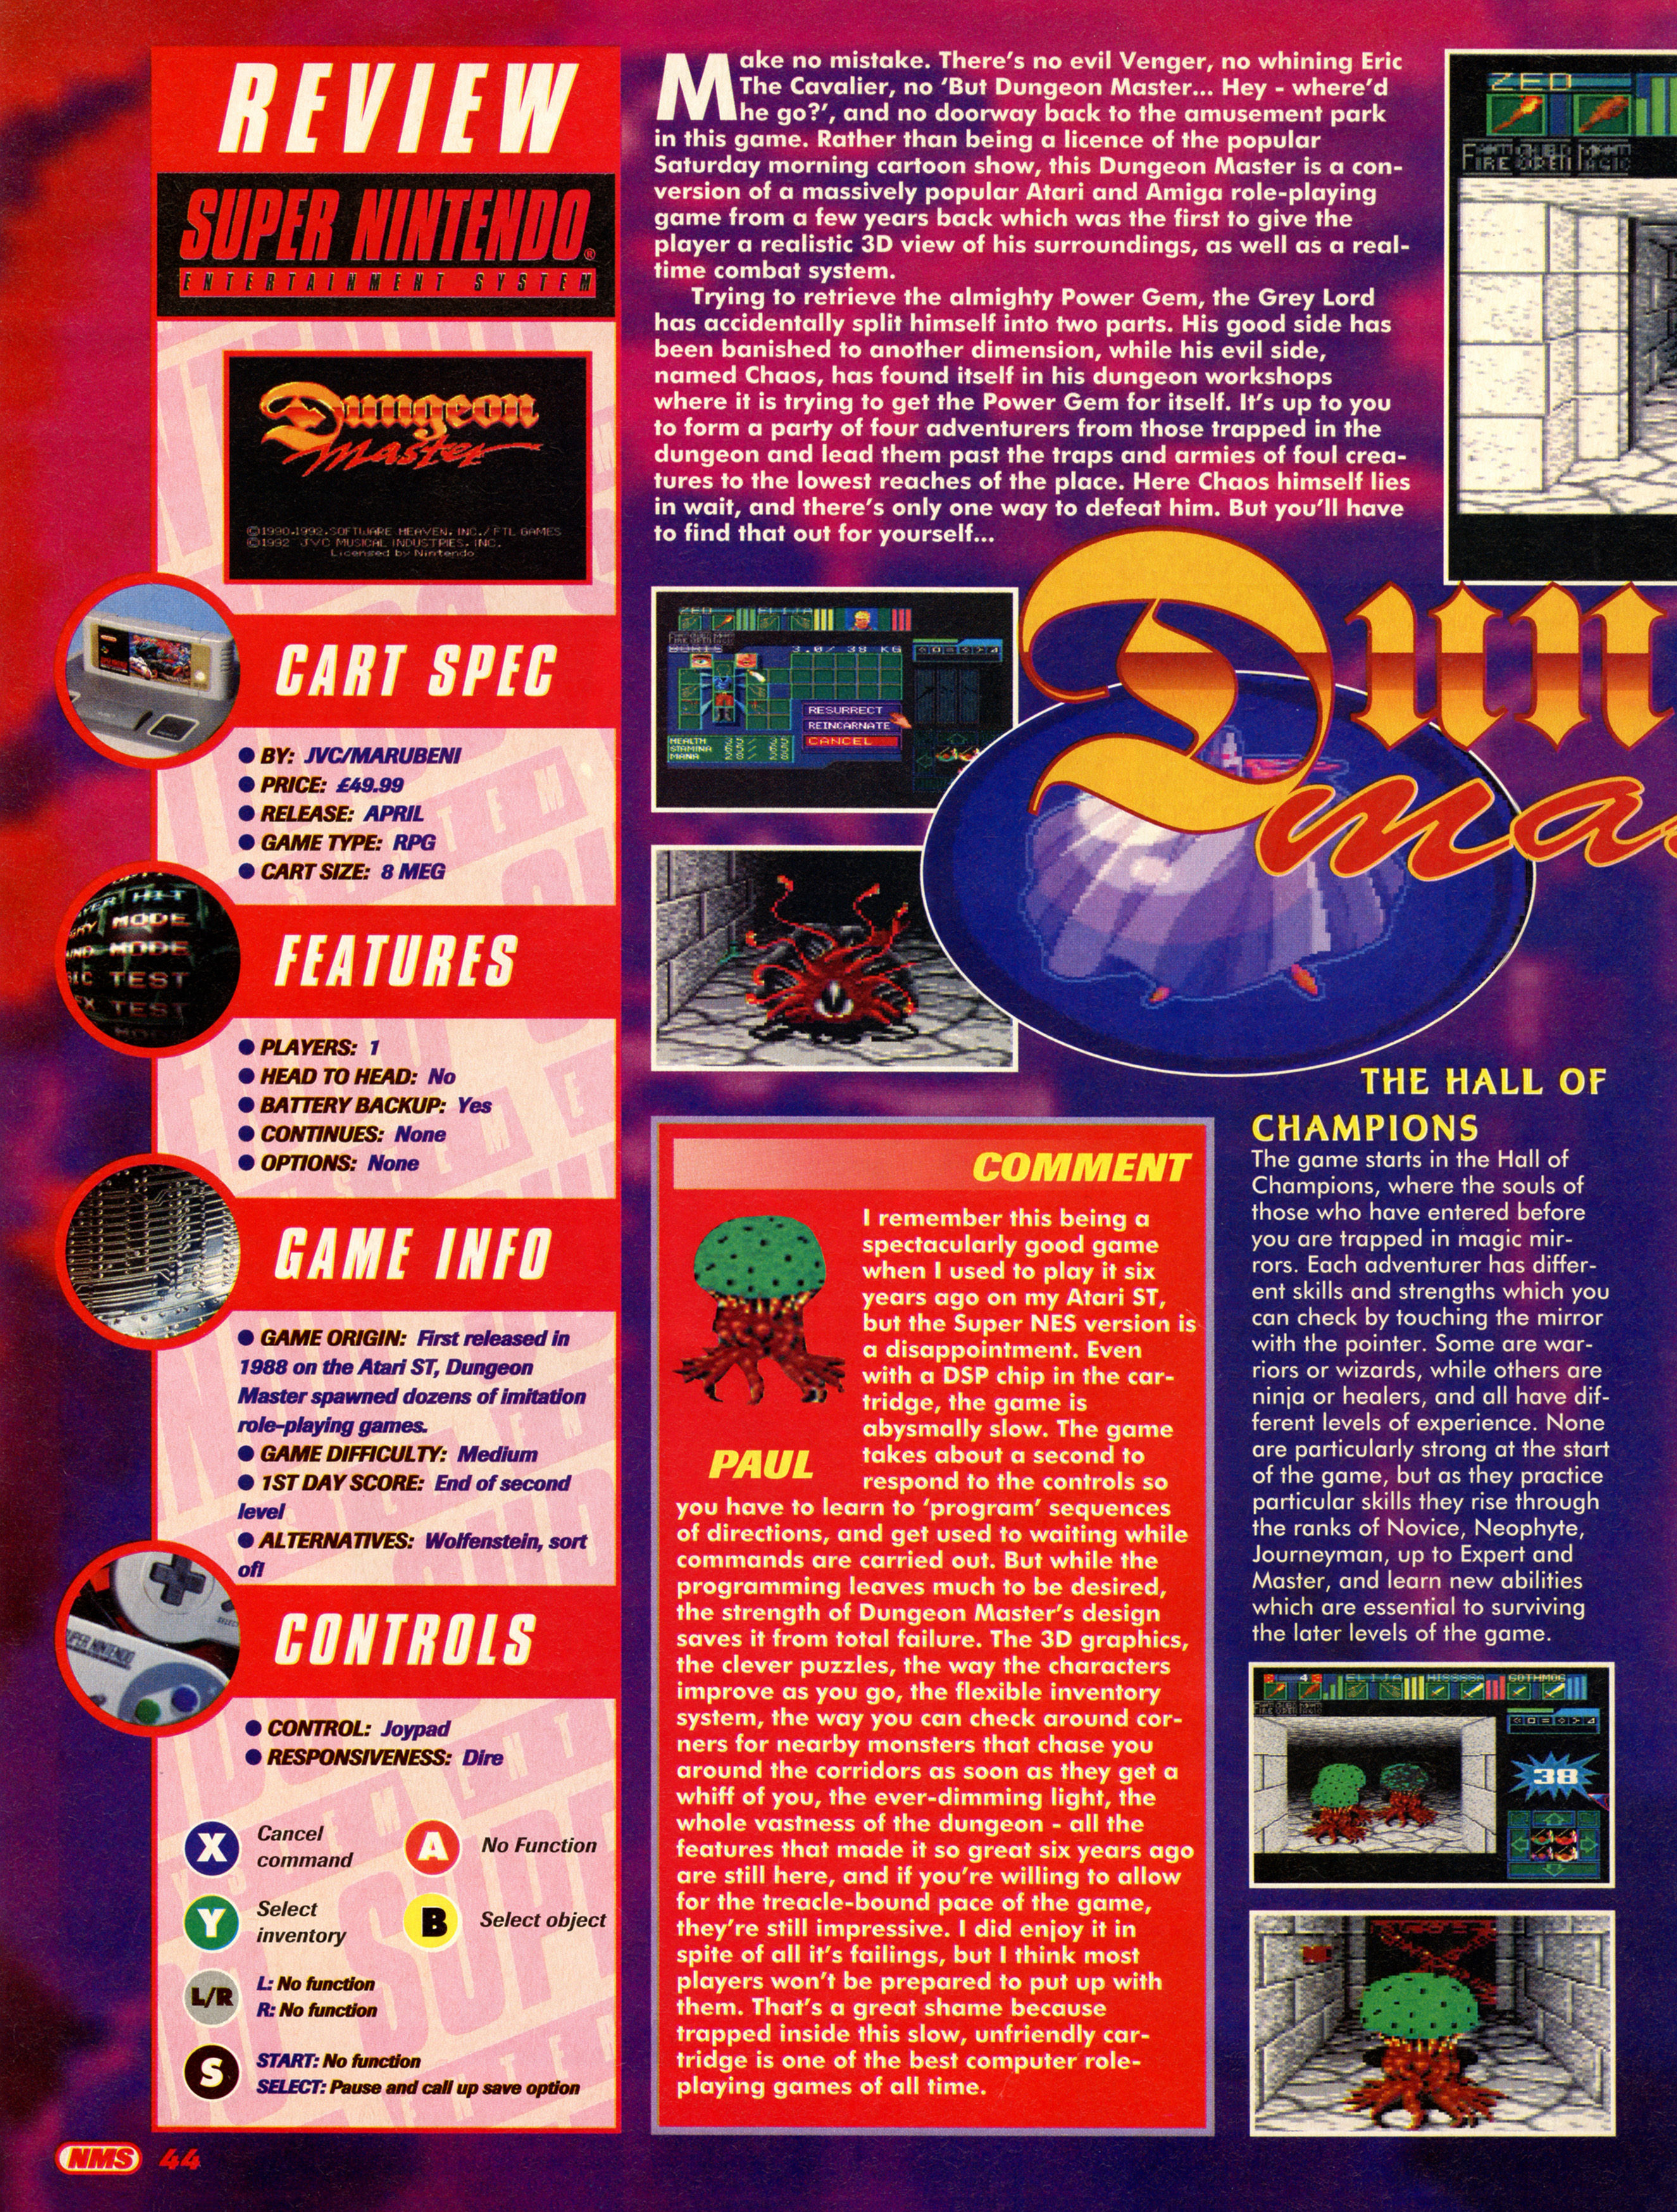 Dungeon Master for Super NES Review published in British magazine 'Nintendo Magazine System', Issue #19 April 1994, Page 44